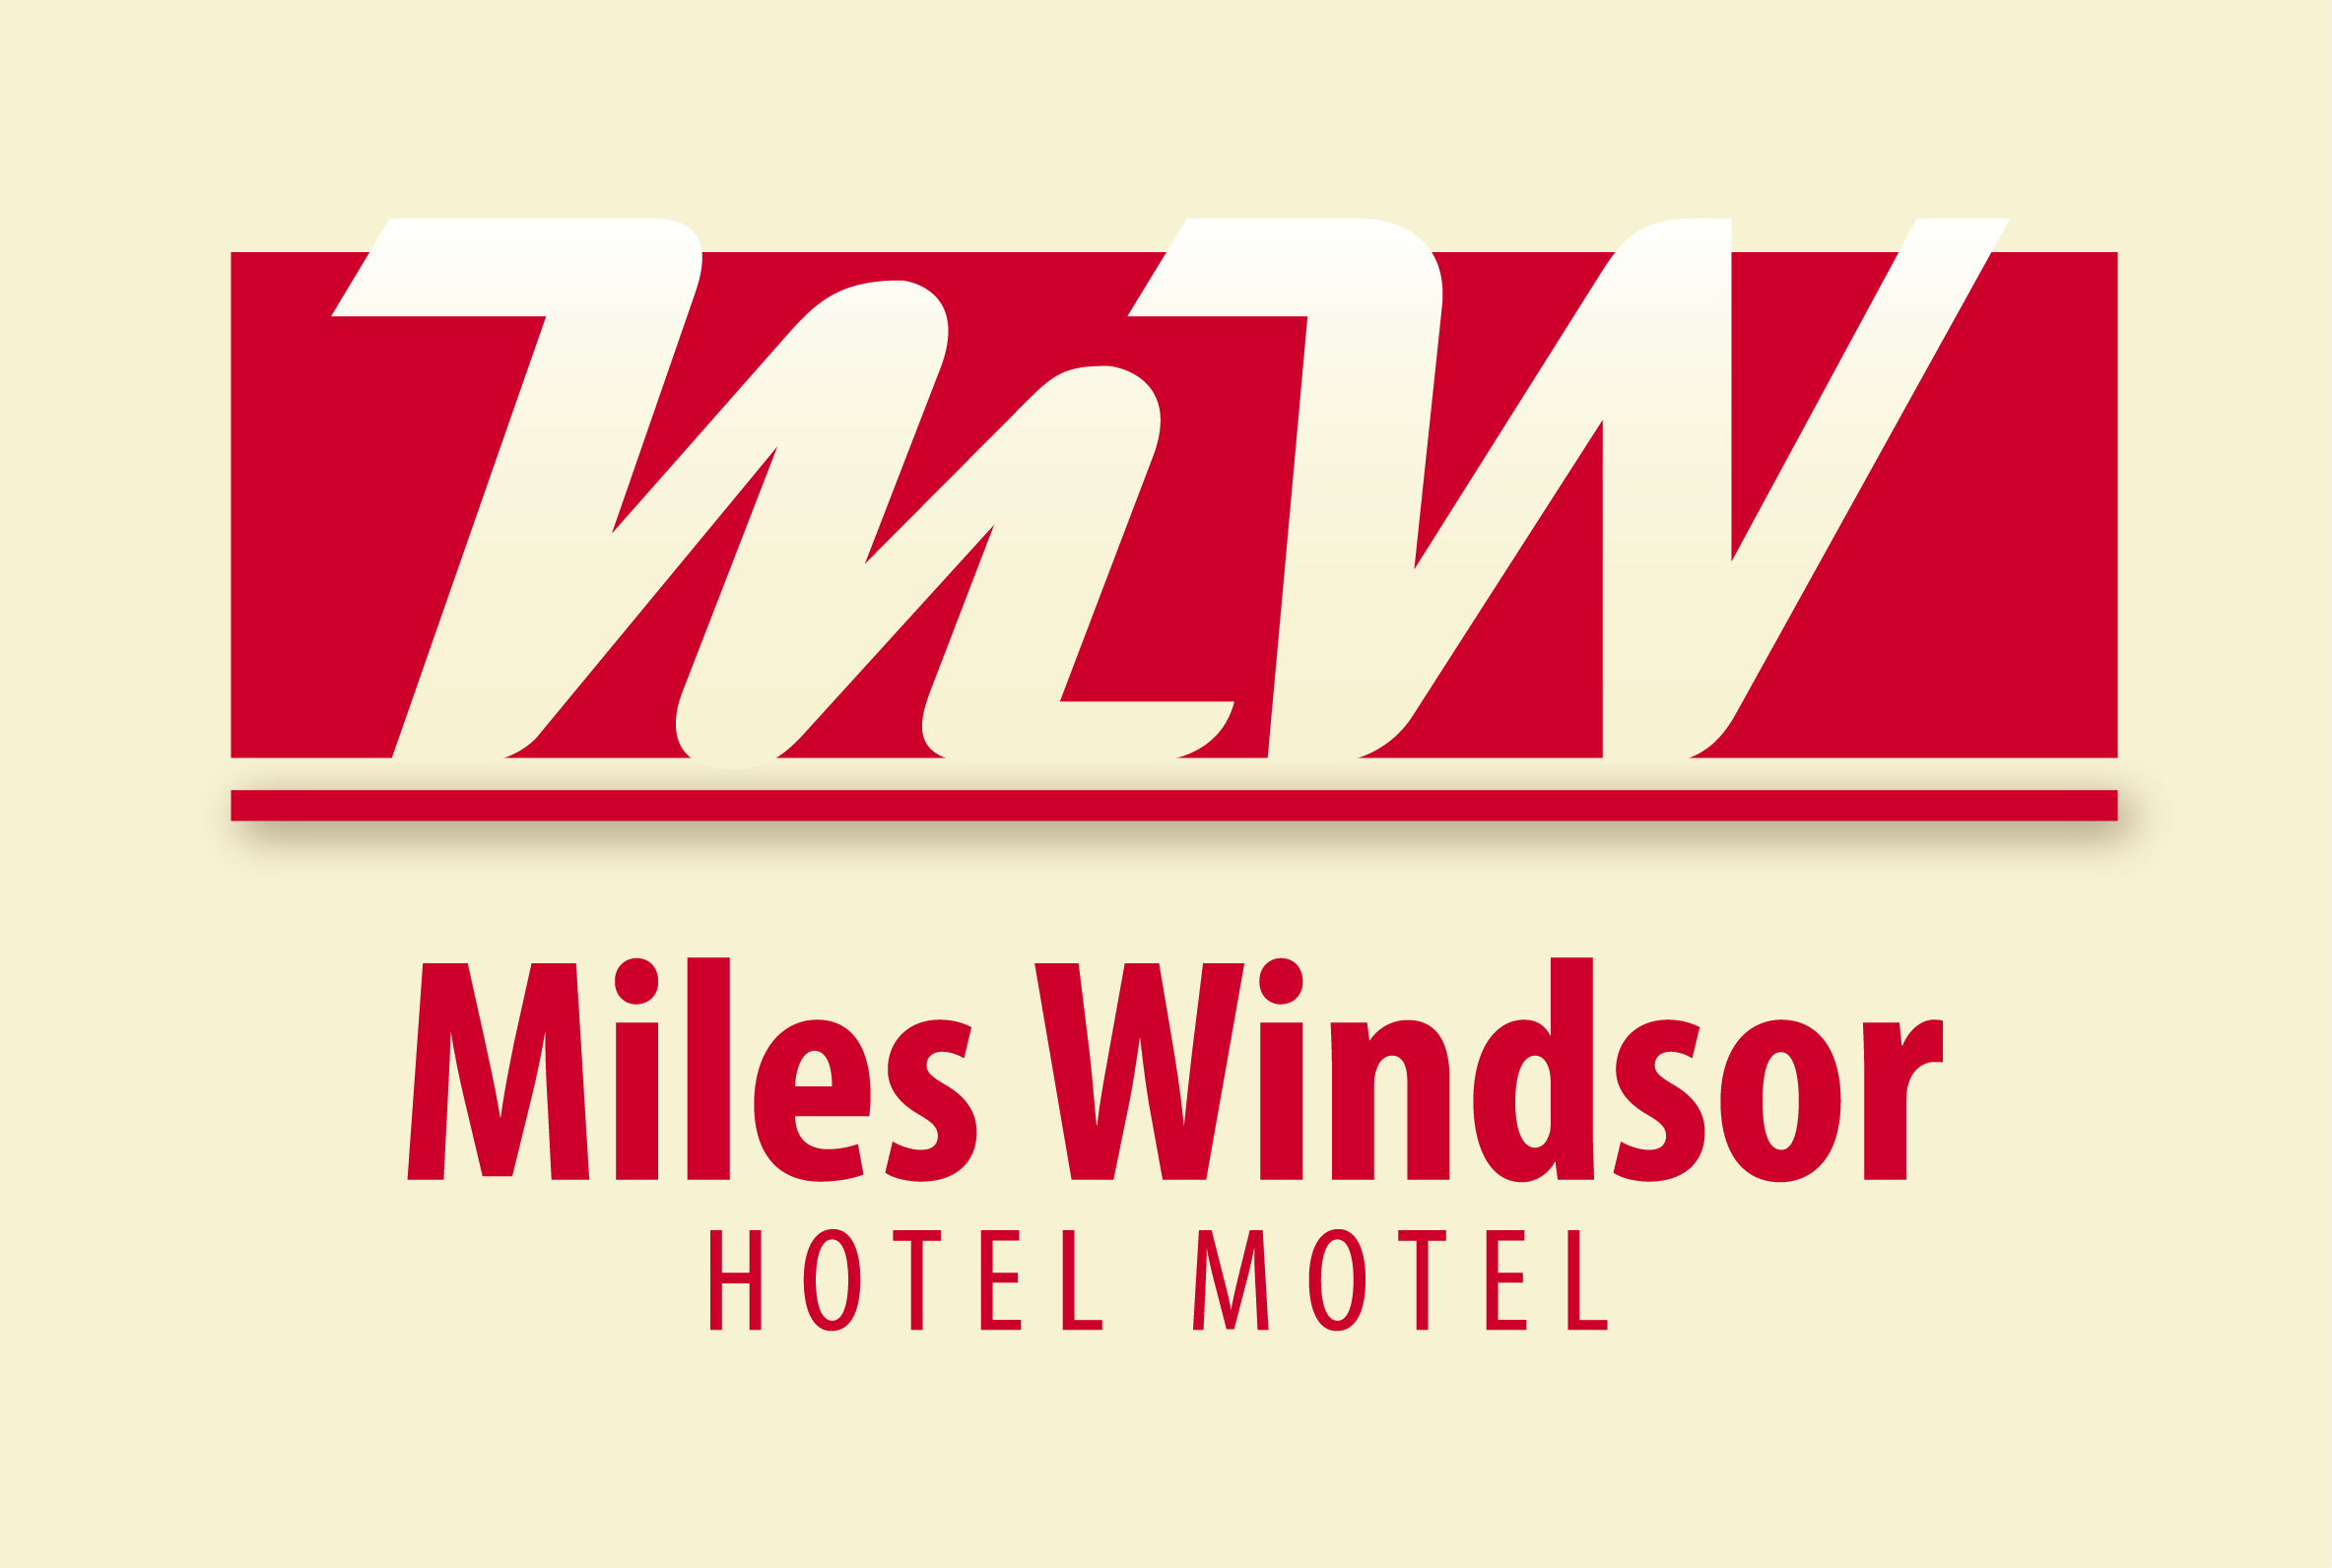 Miles Windsor Hotel Motel - Accommodation in Surfers Paradise